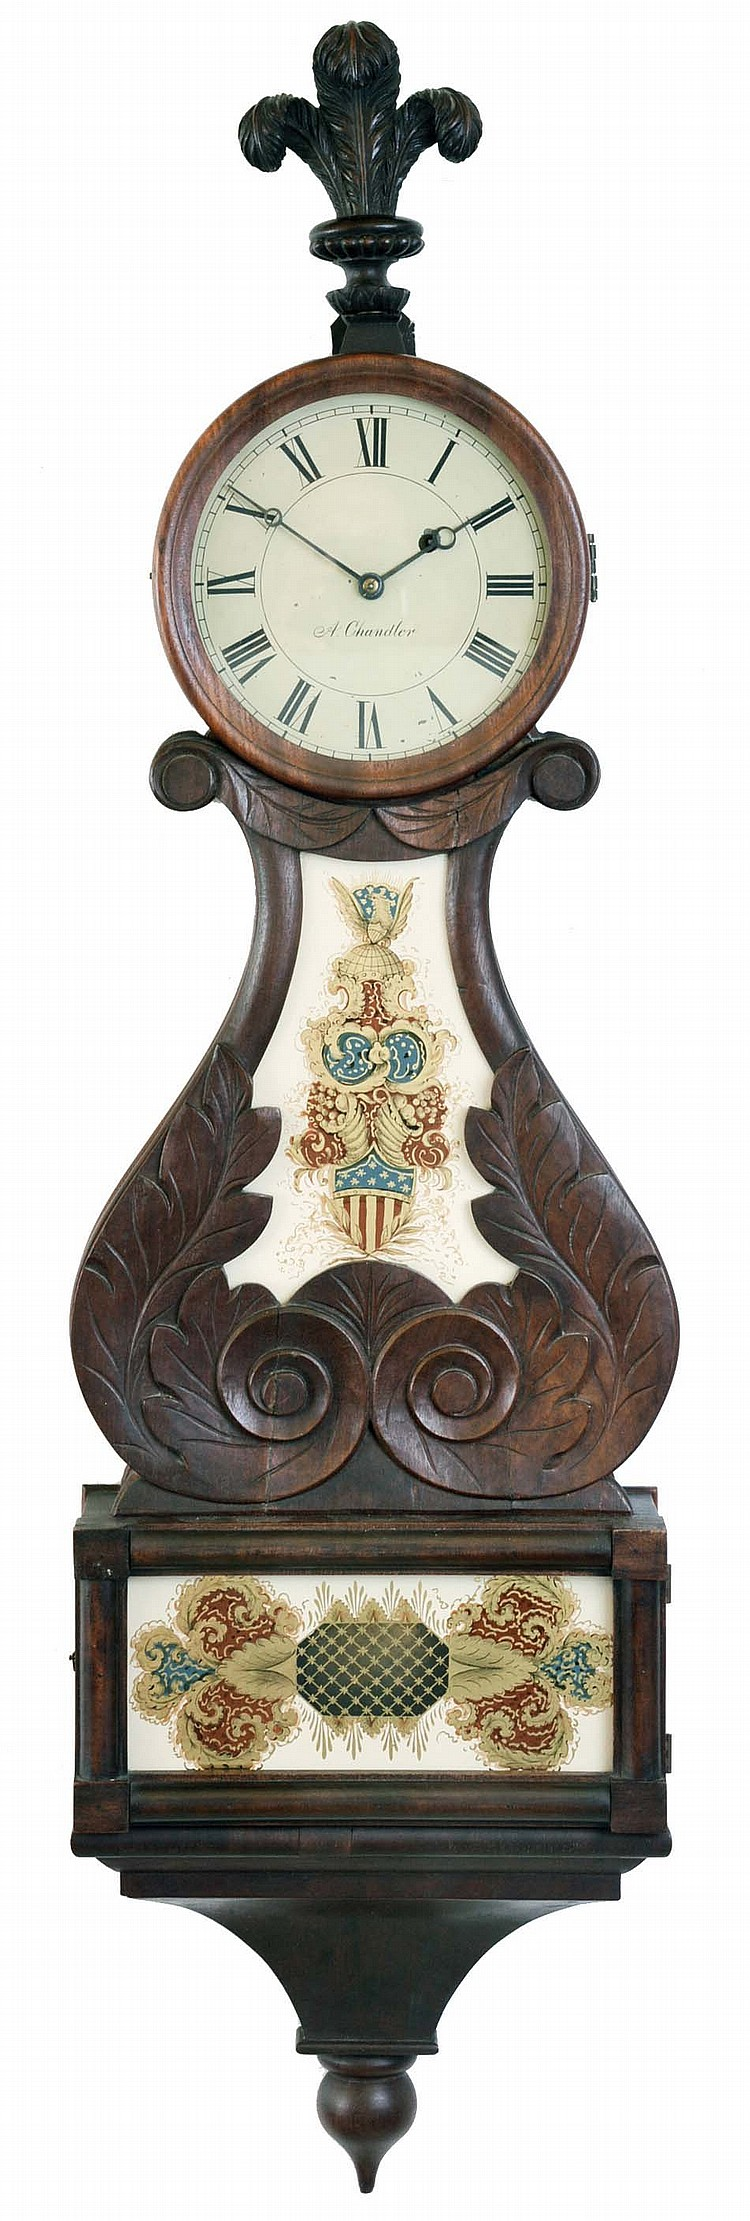 Lyre clock, carved mahogany case with reverse painted glasses, case bottom with incurved bracket and turned drop, and top with carved Prince of Wales feather finial, Roman numeral painted dial signed